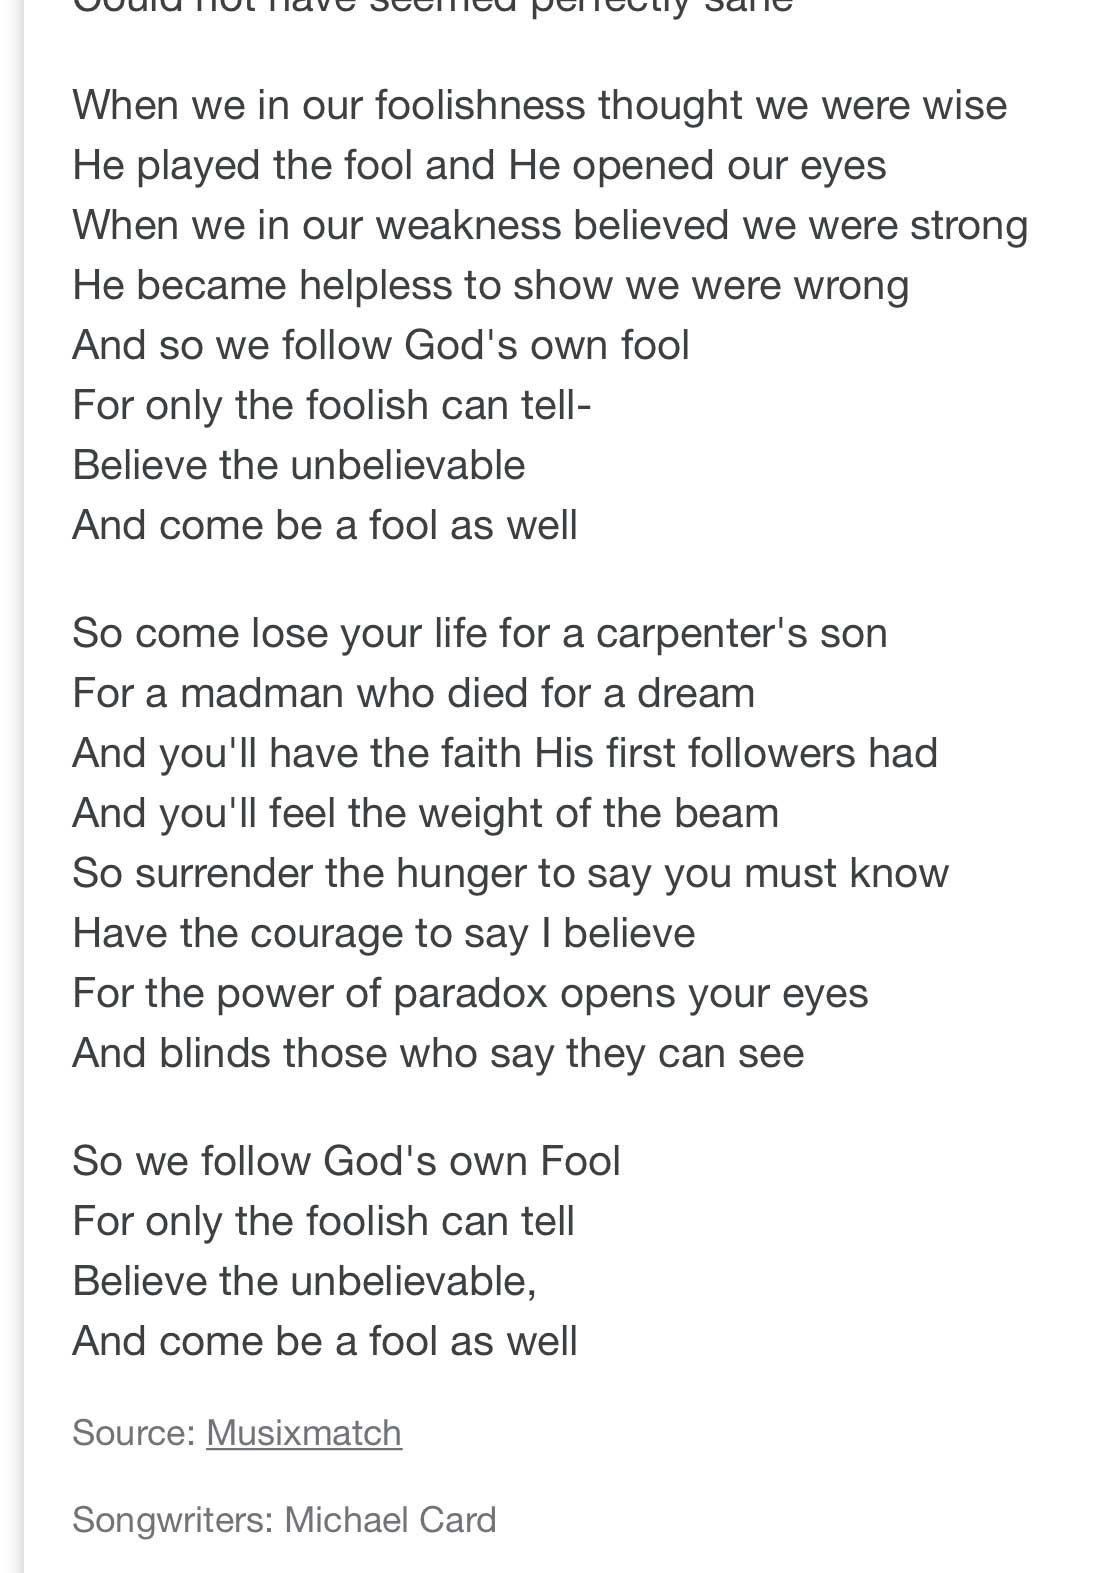 Song lyrics about the Wisdom of God is foolishness to man